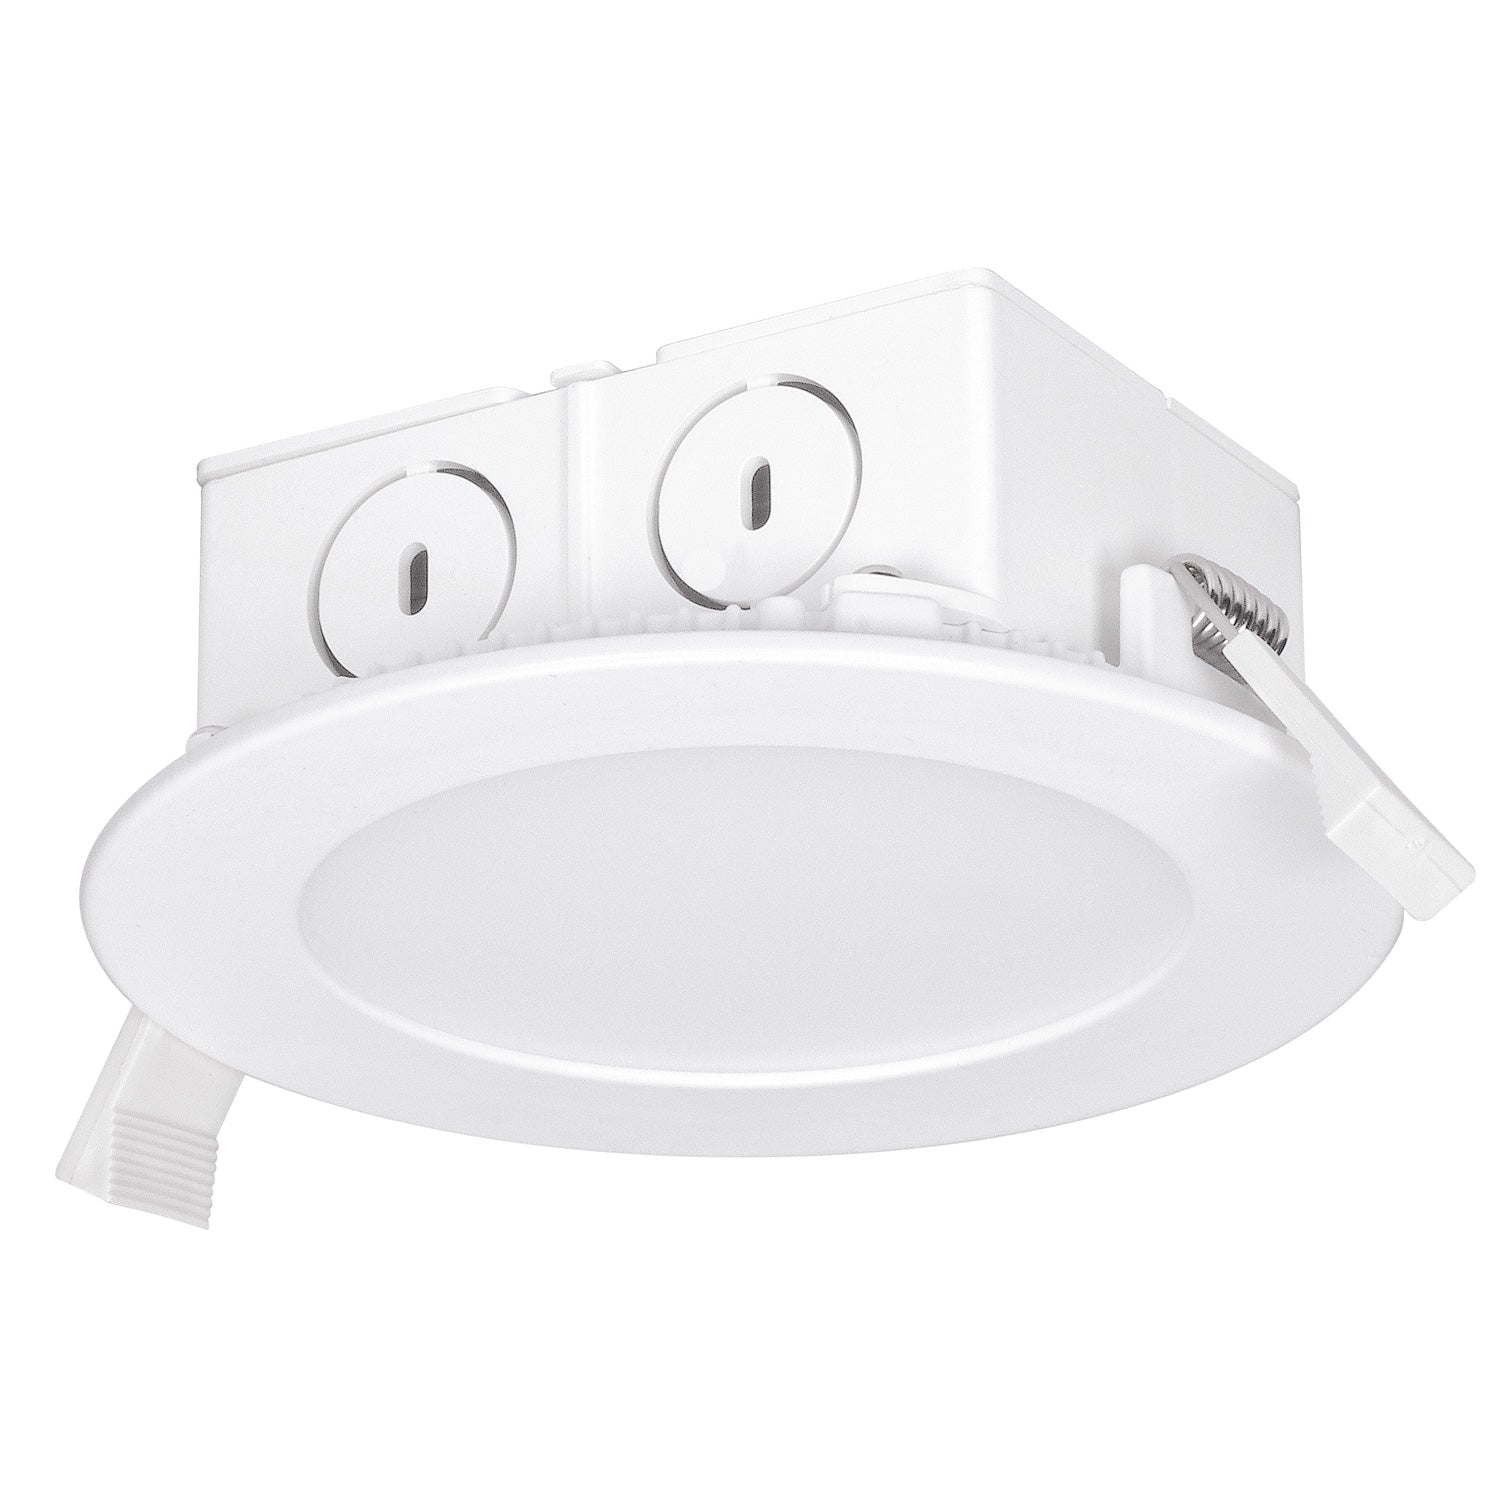 Satco 8.5w 4in. LED Direct Wire Downlight 4000K Cool White - Dimmable